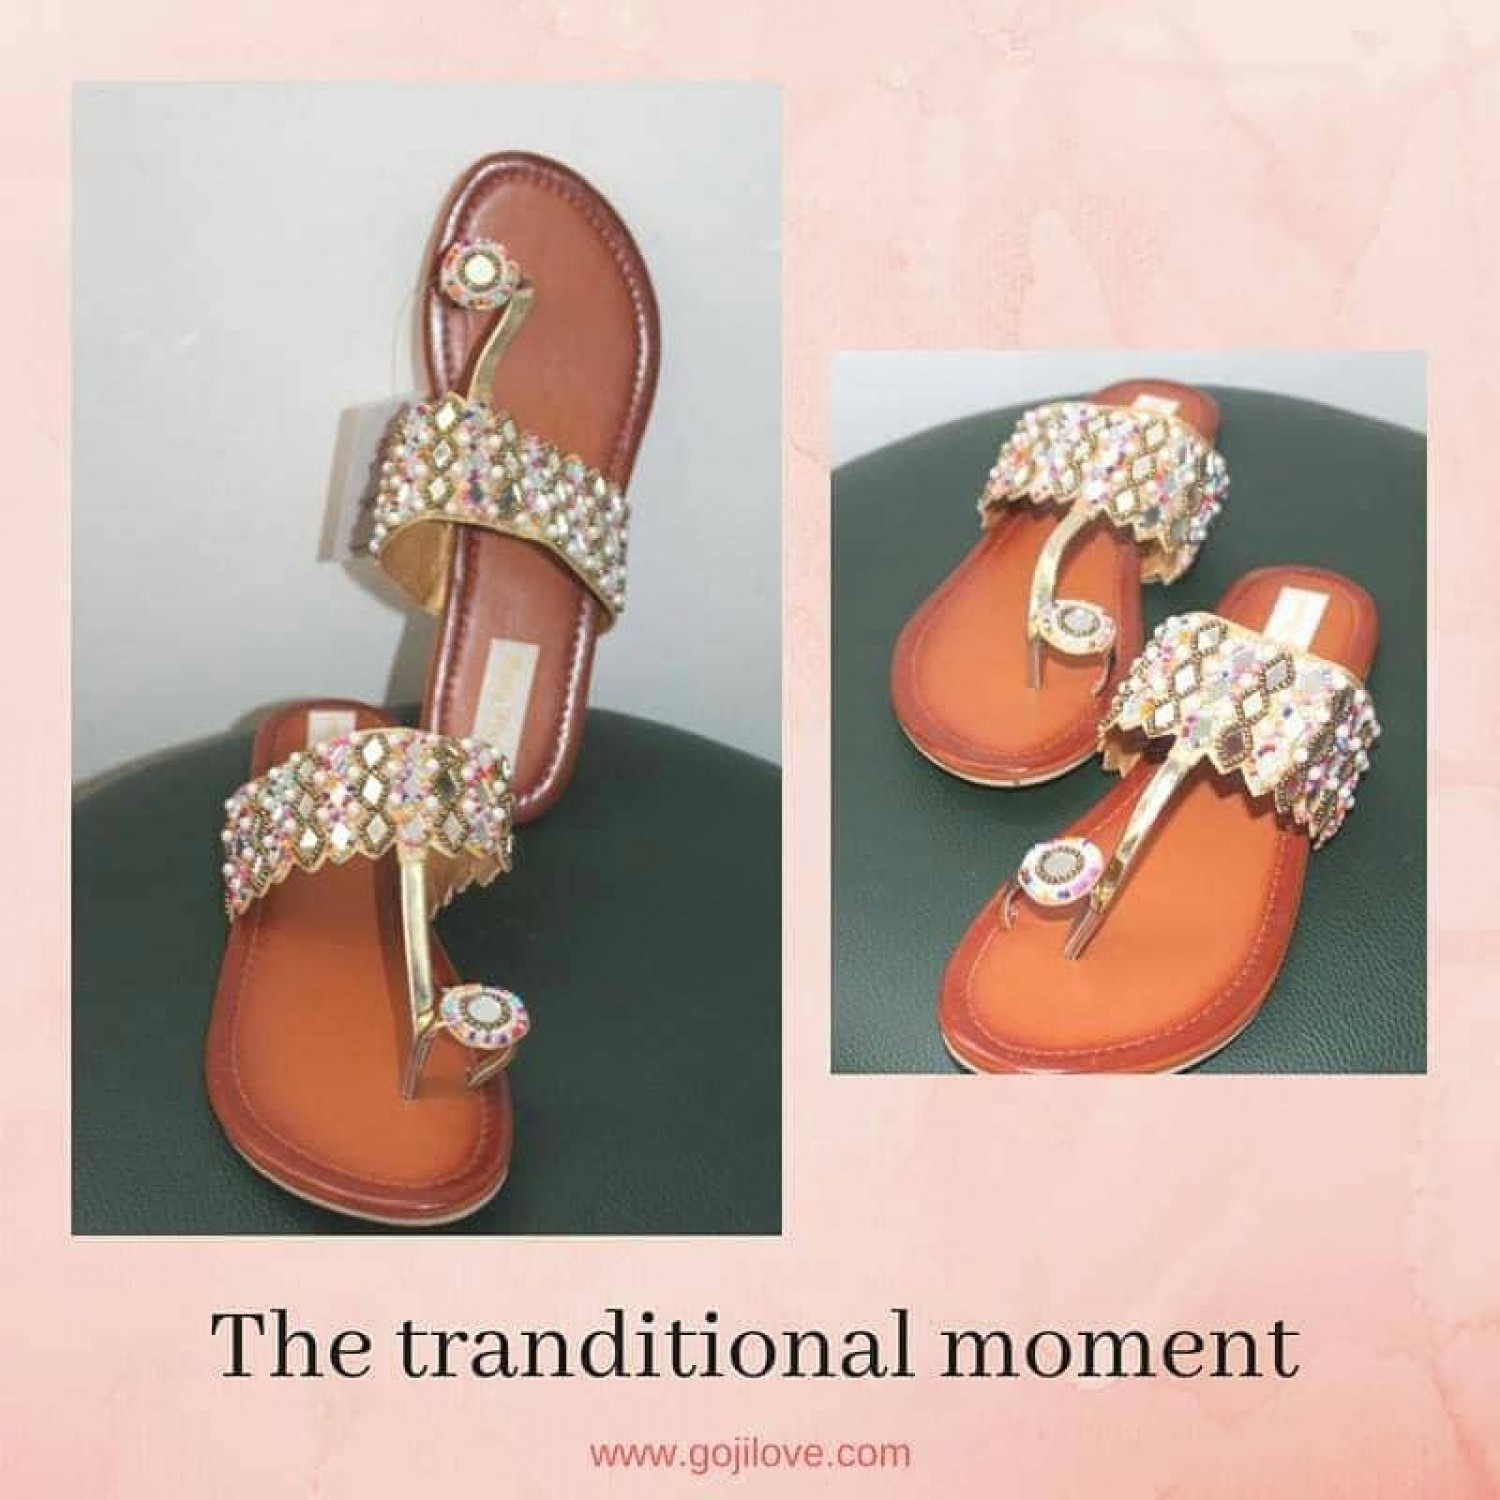 The tradition moment (flat) chappal